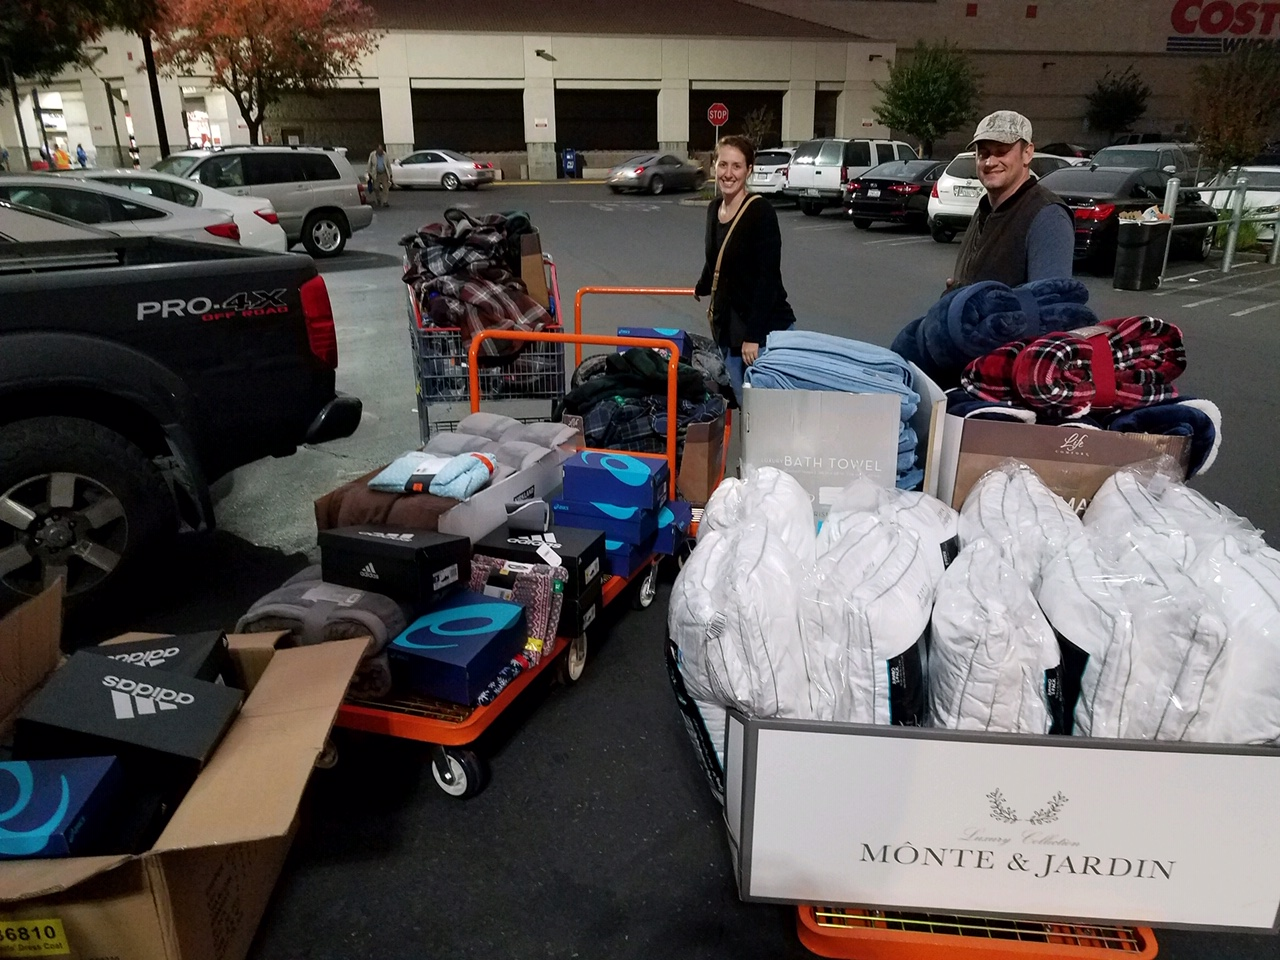 Sean Chambers and fiancé Rachel Hetts buying supplies at Costco with donations to bring to the evacuees of the Camp Fire wildfire in Paradise, Calif.